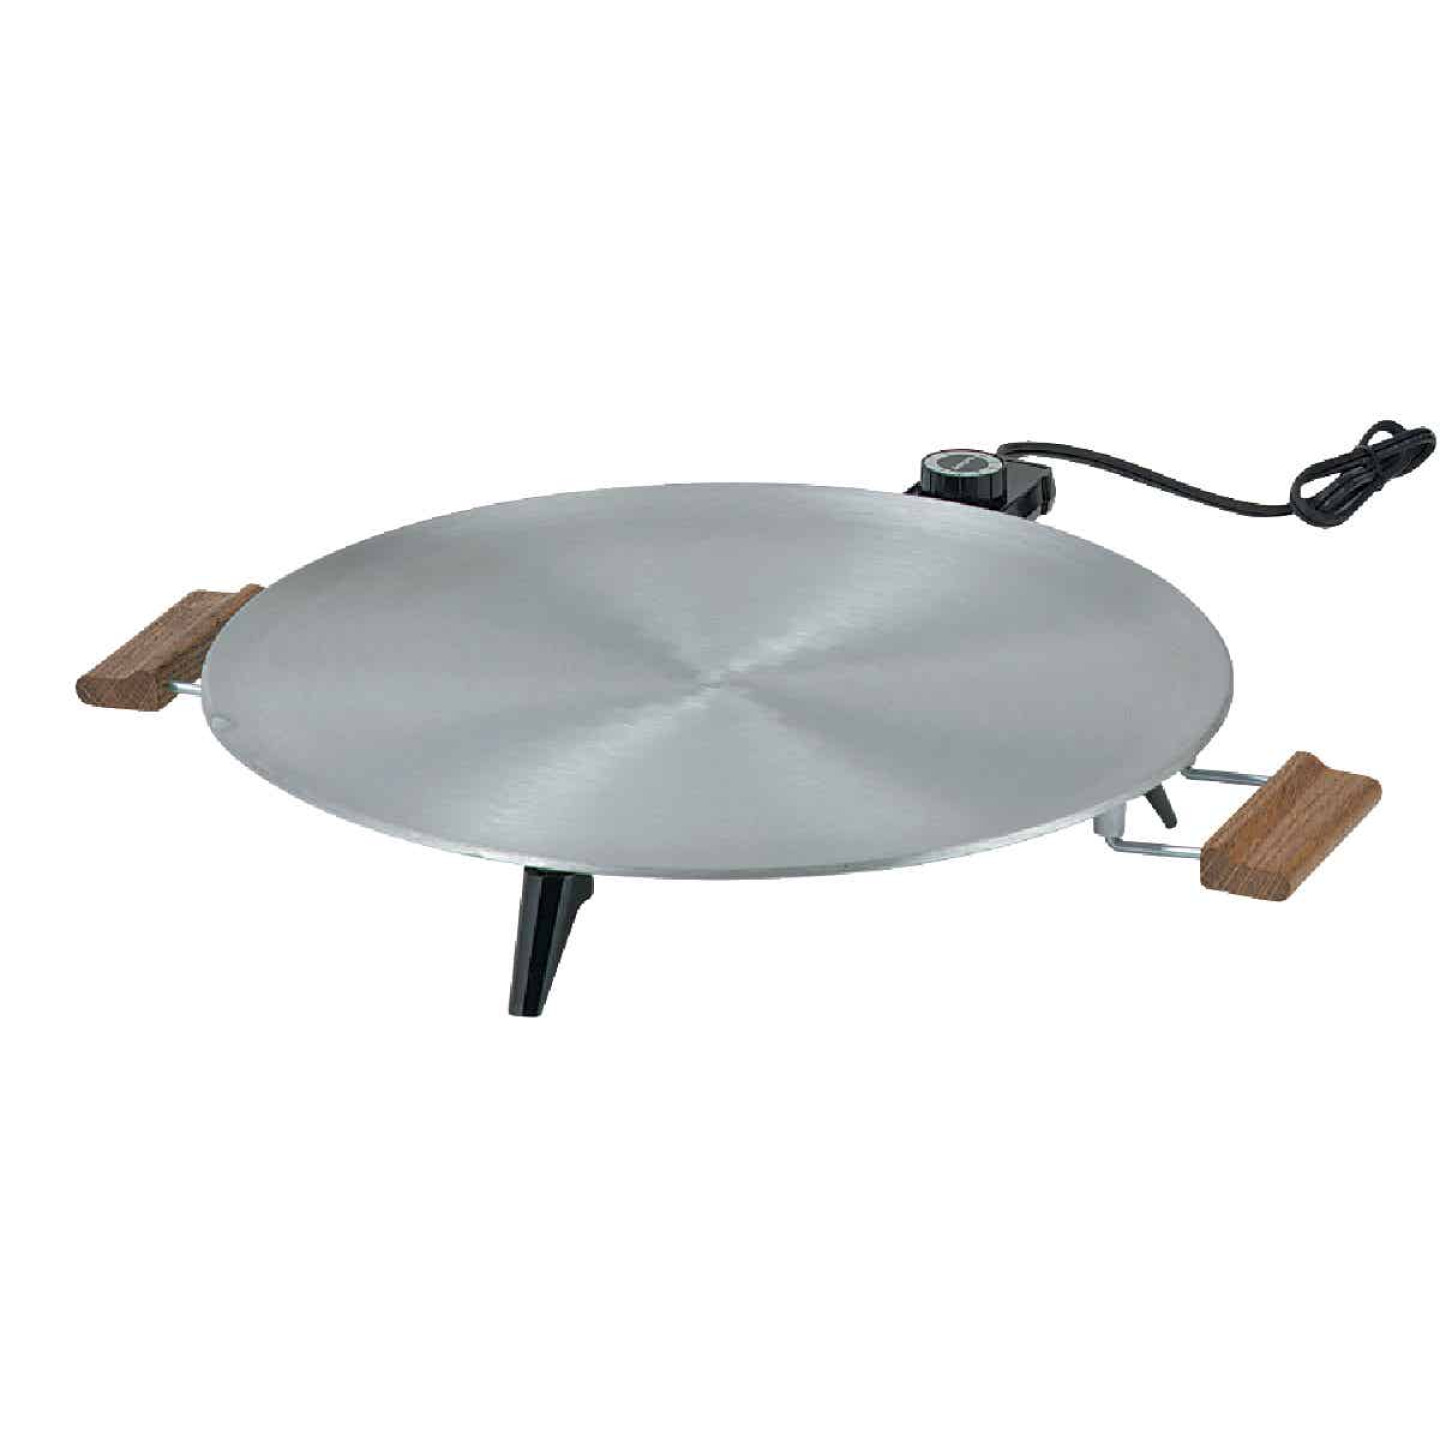 Heritage 16 In. Round Electric Grill Image 1